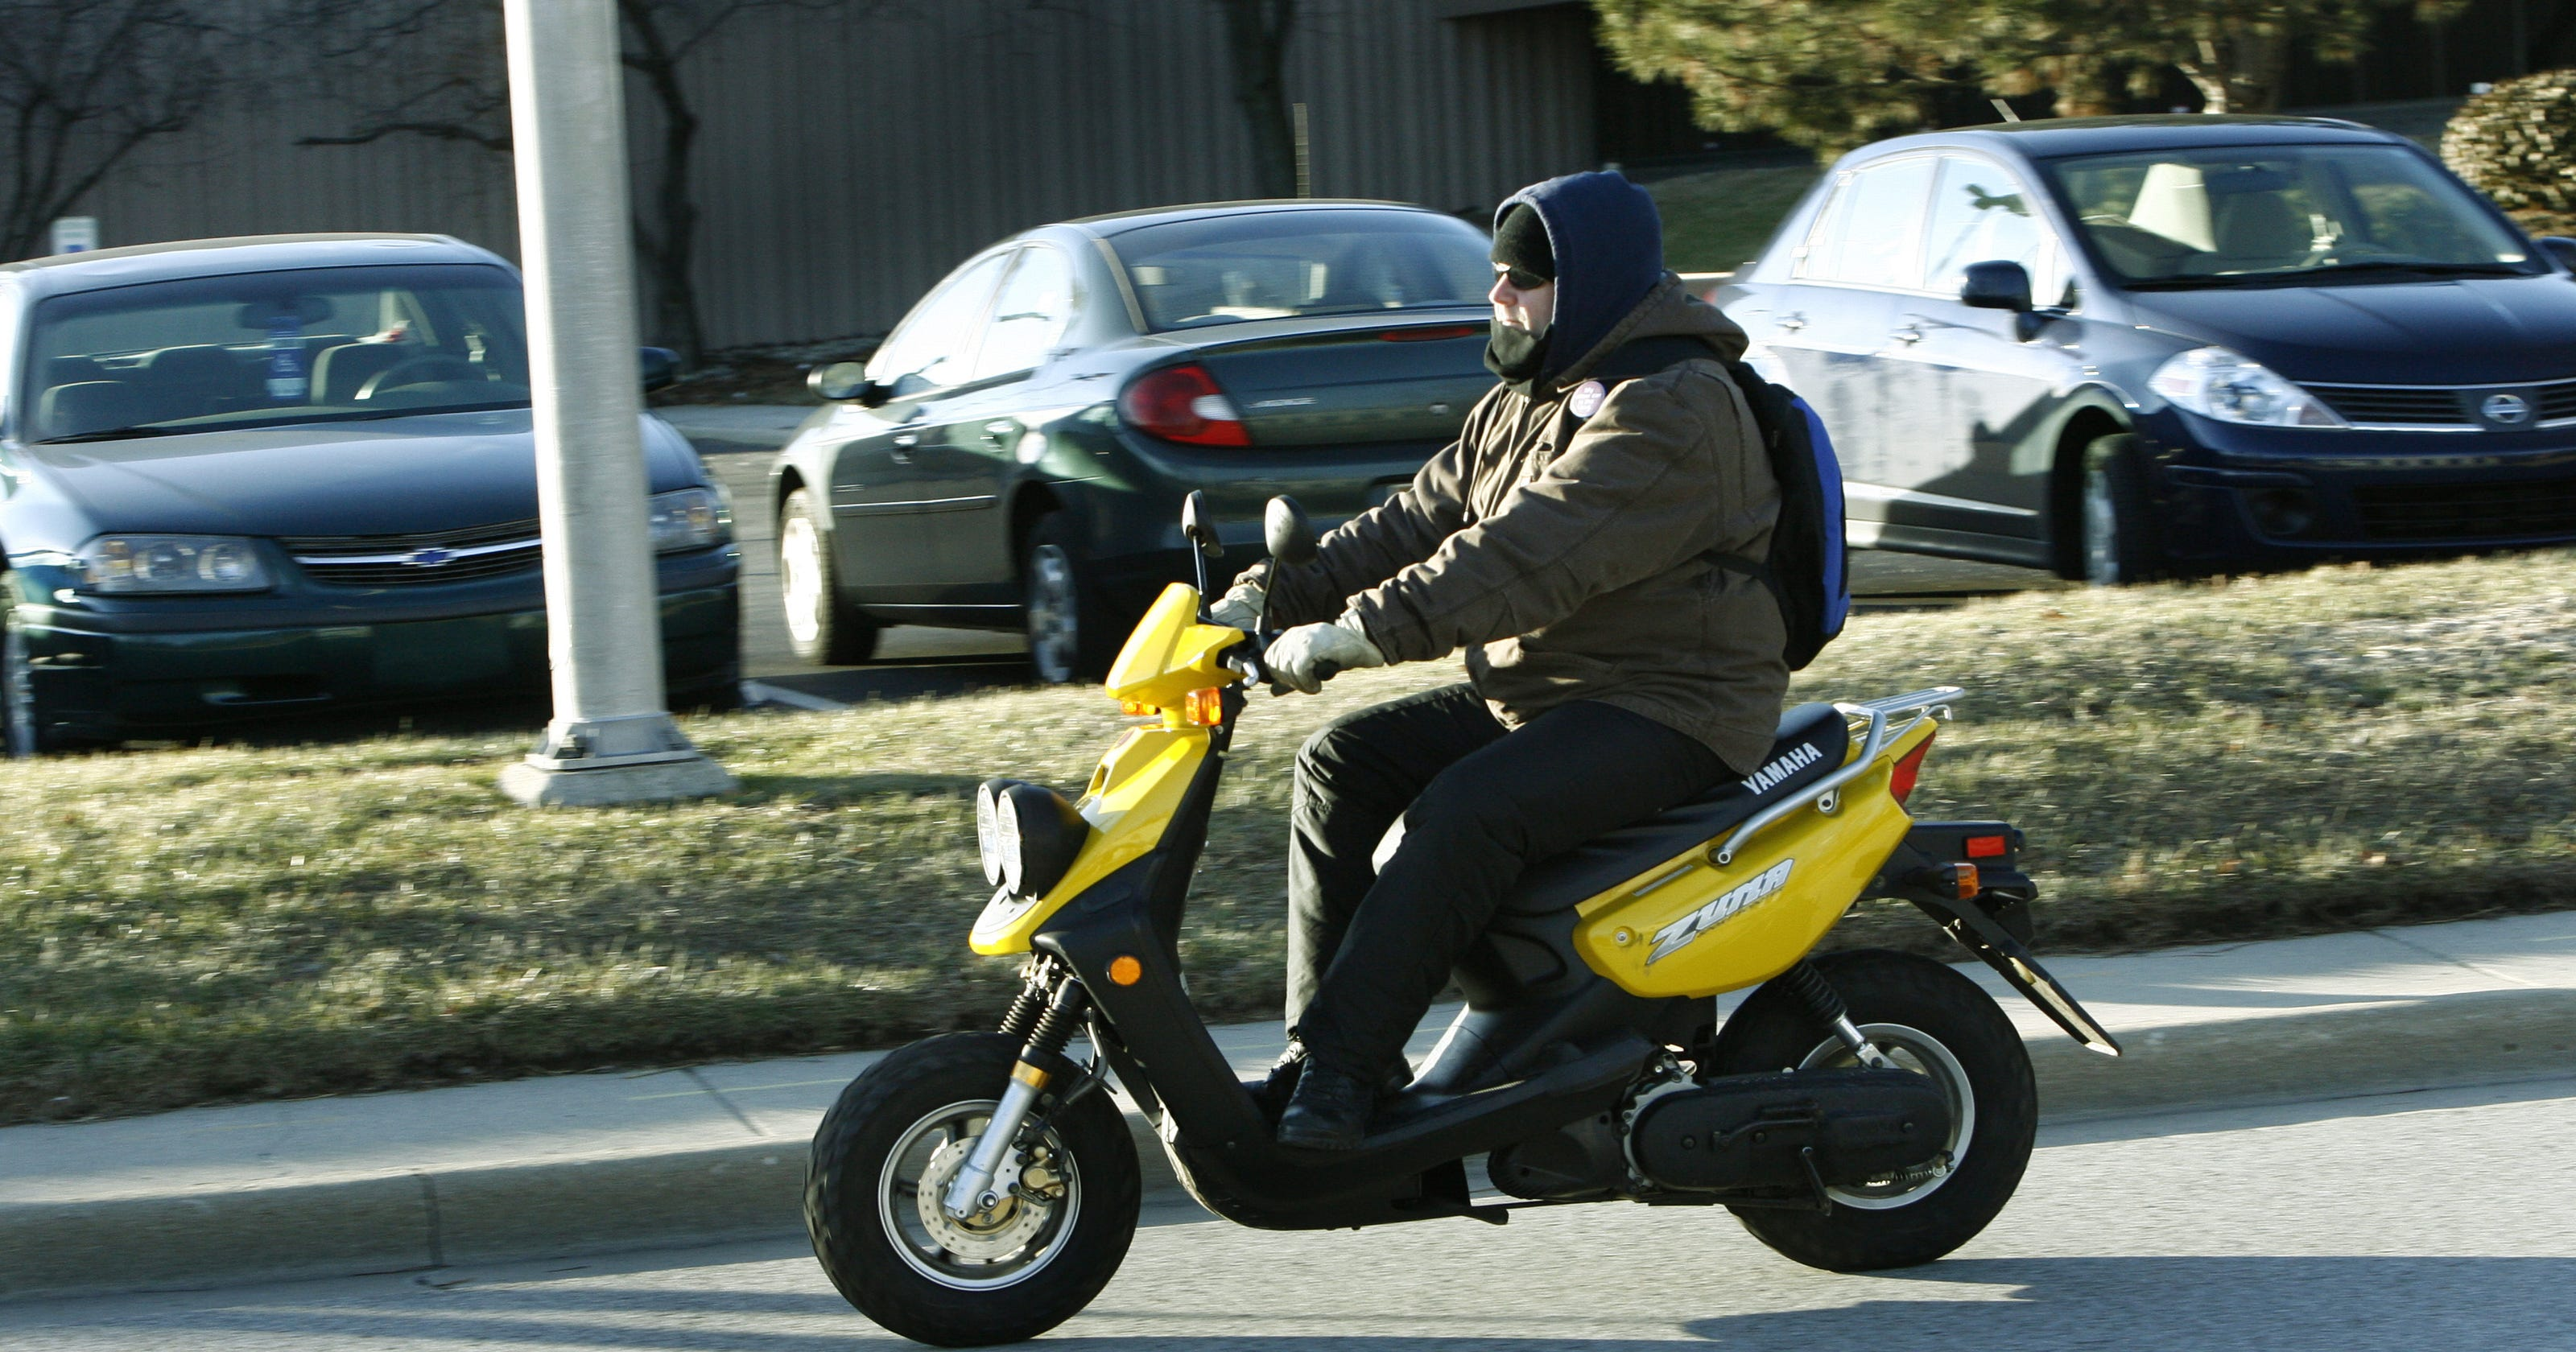 Moped scooter riders in Indiana face tighter rules